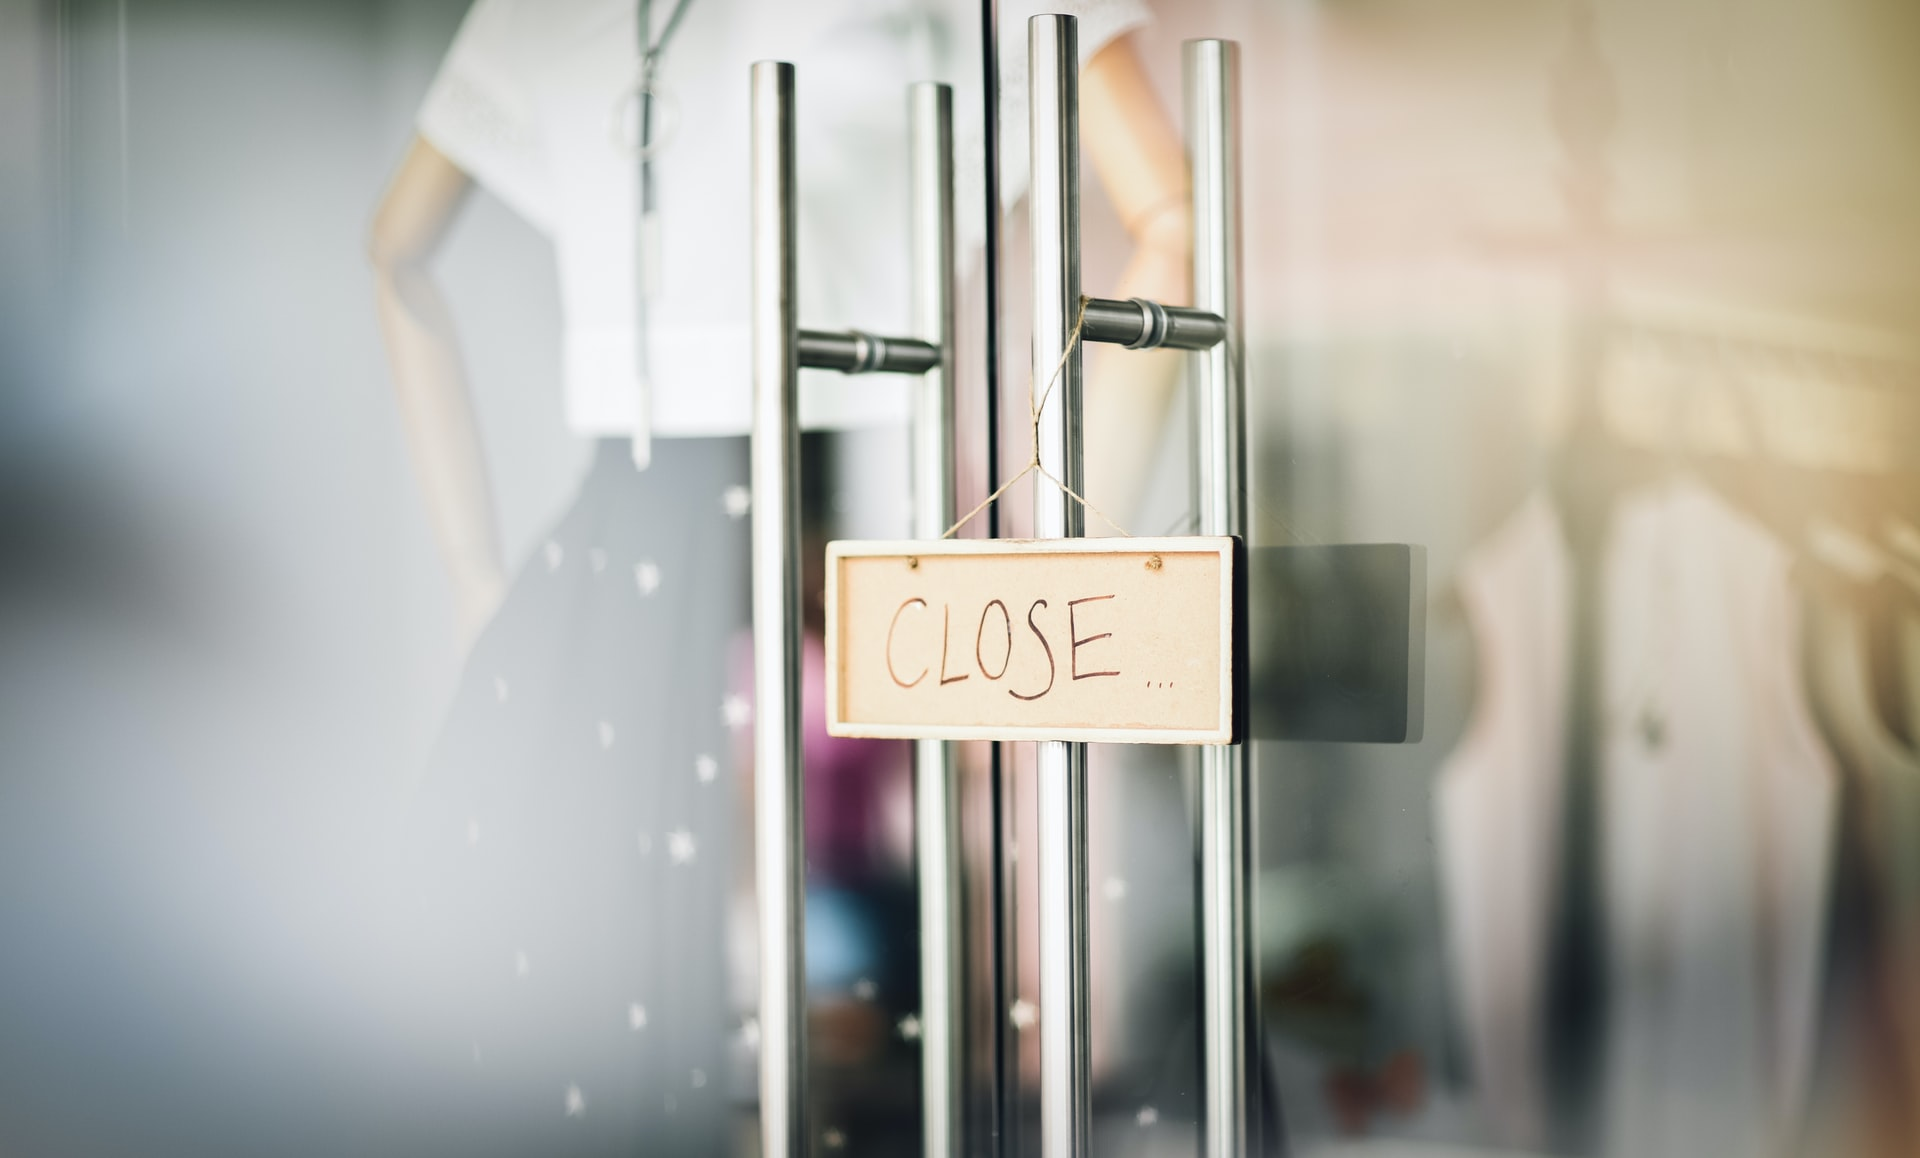 Top 5 Warning Signs It's Time to Close Your Business and Move On